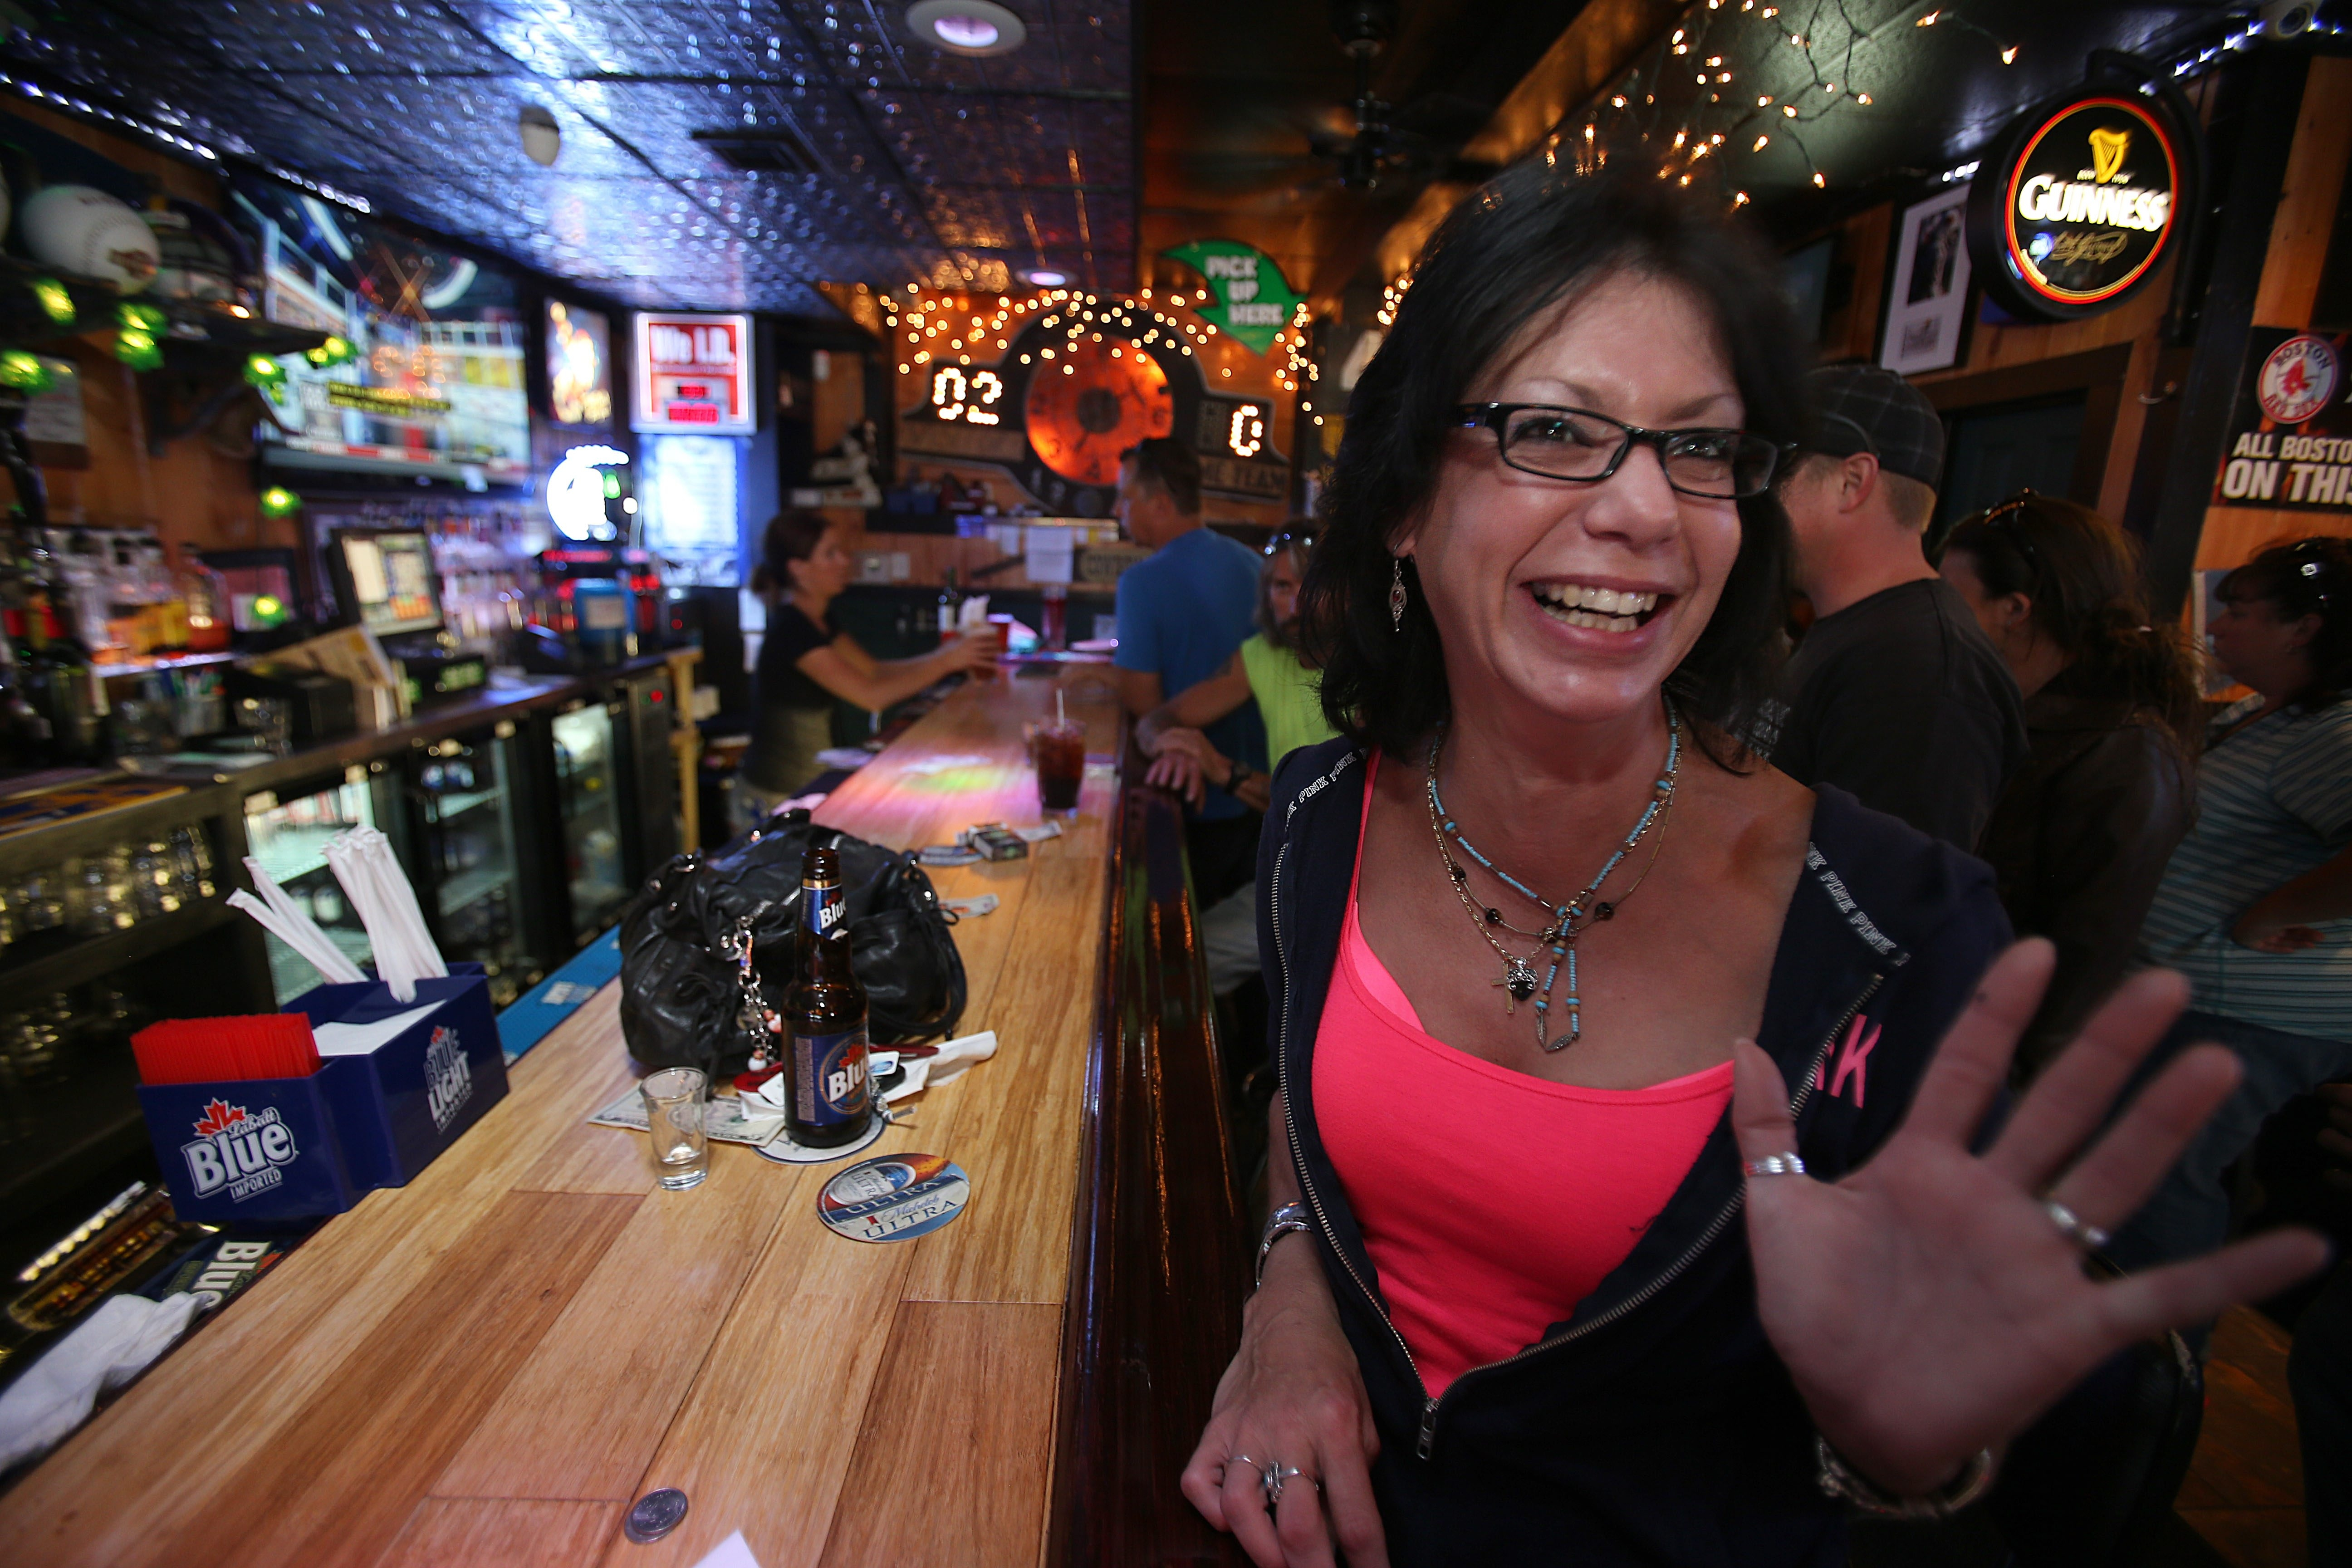 Christine Larosa, of Depew, has a laugh at Mooney's Sports Bar & Grill on Broadway in Depew.